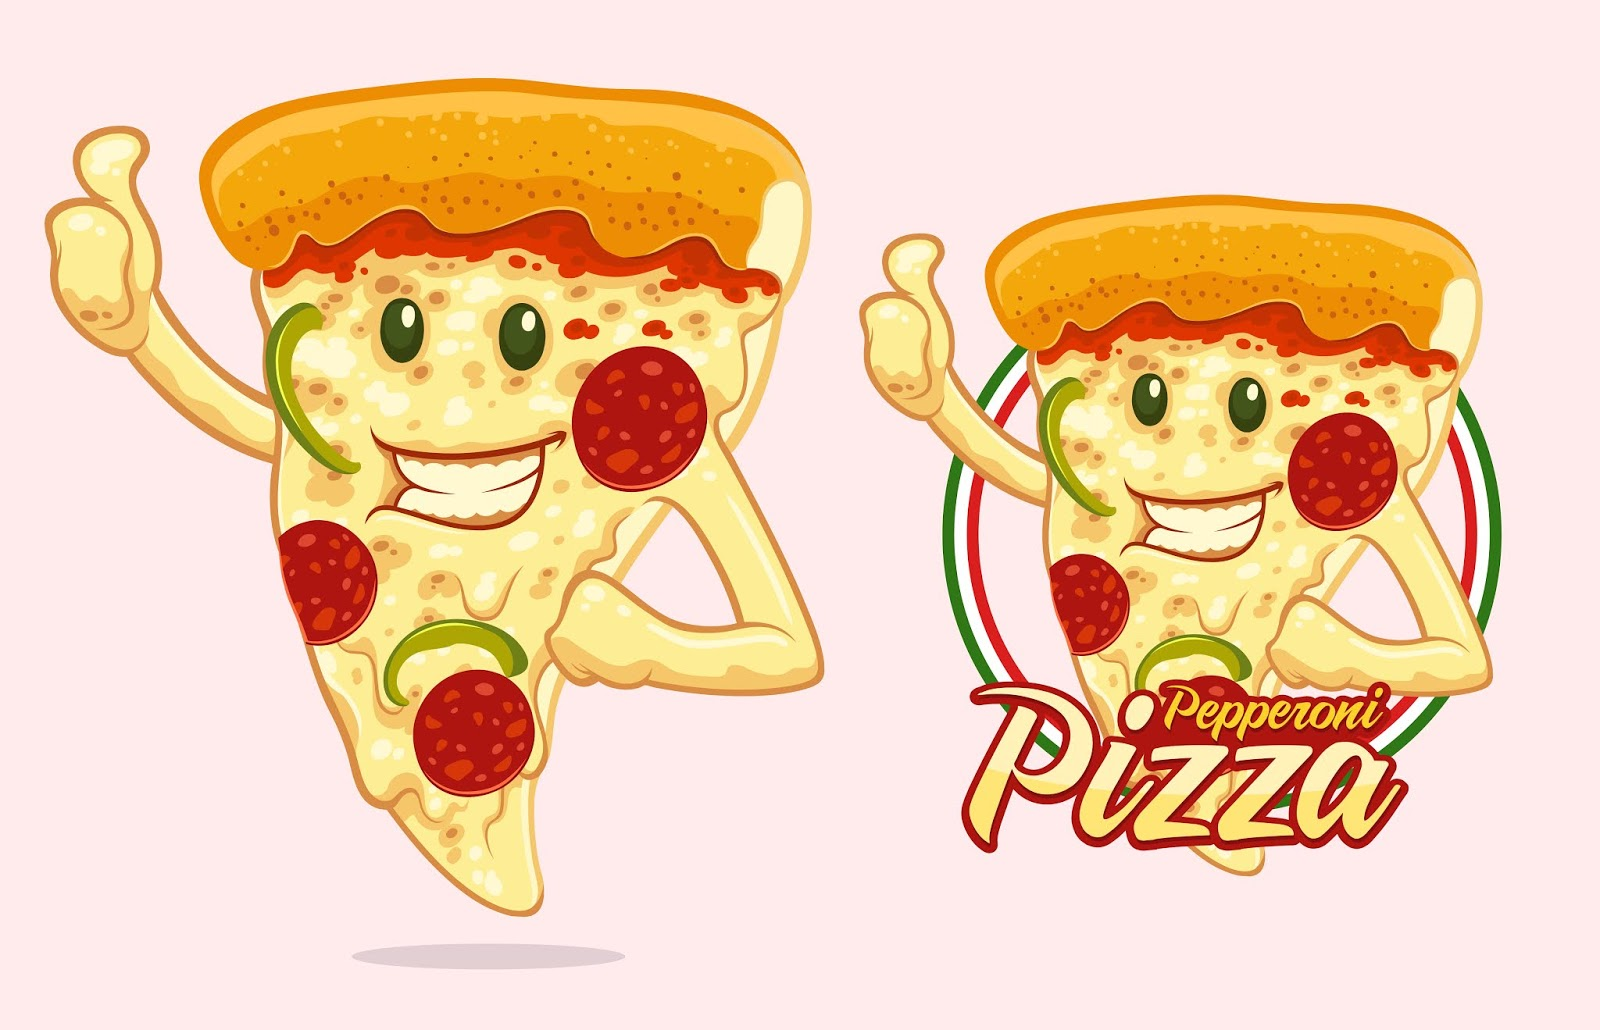 Pizza Mascot Design Pizza Vendor Free Download Vector CDR, AI, EPS and PNG Formats